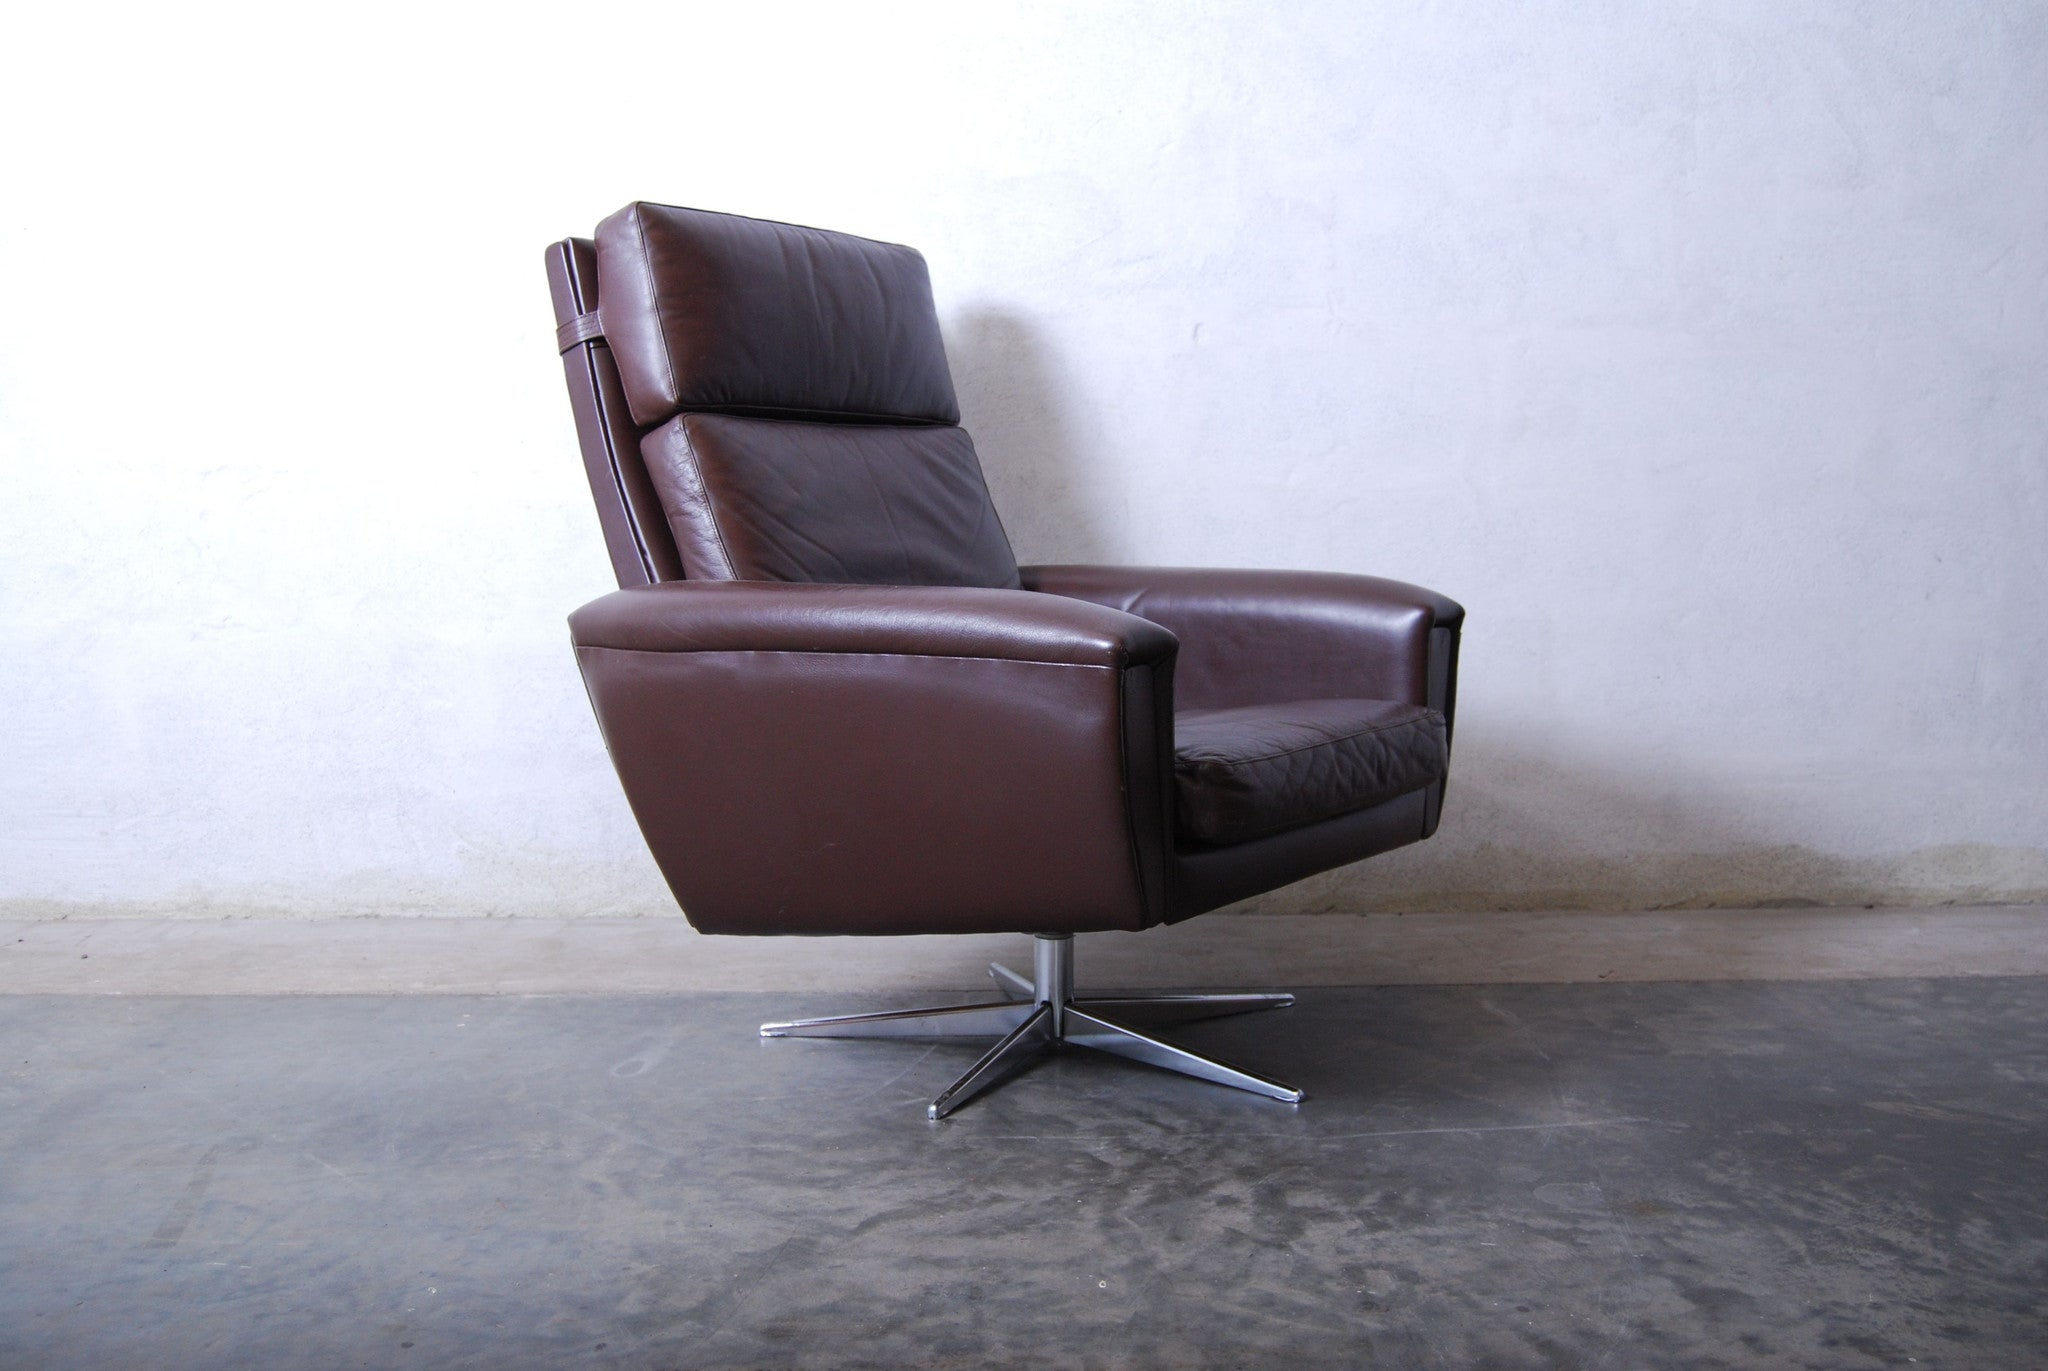 Chase & Sorensen Highback leather swivel chair